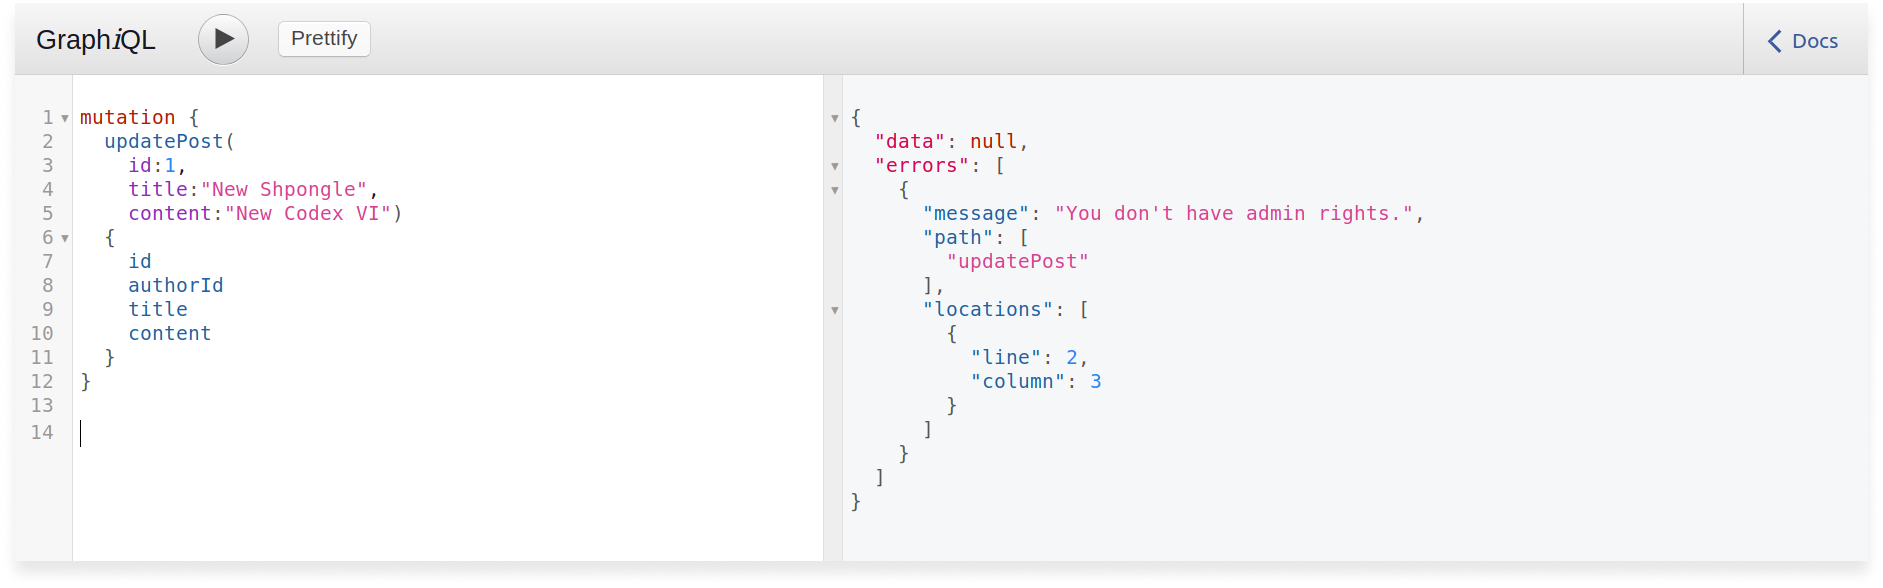 GraphQL query to update a post in a Scala GraphQL application. The post is not updated because no access rights.